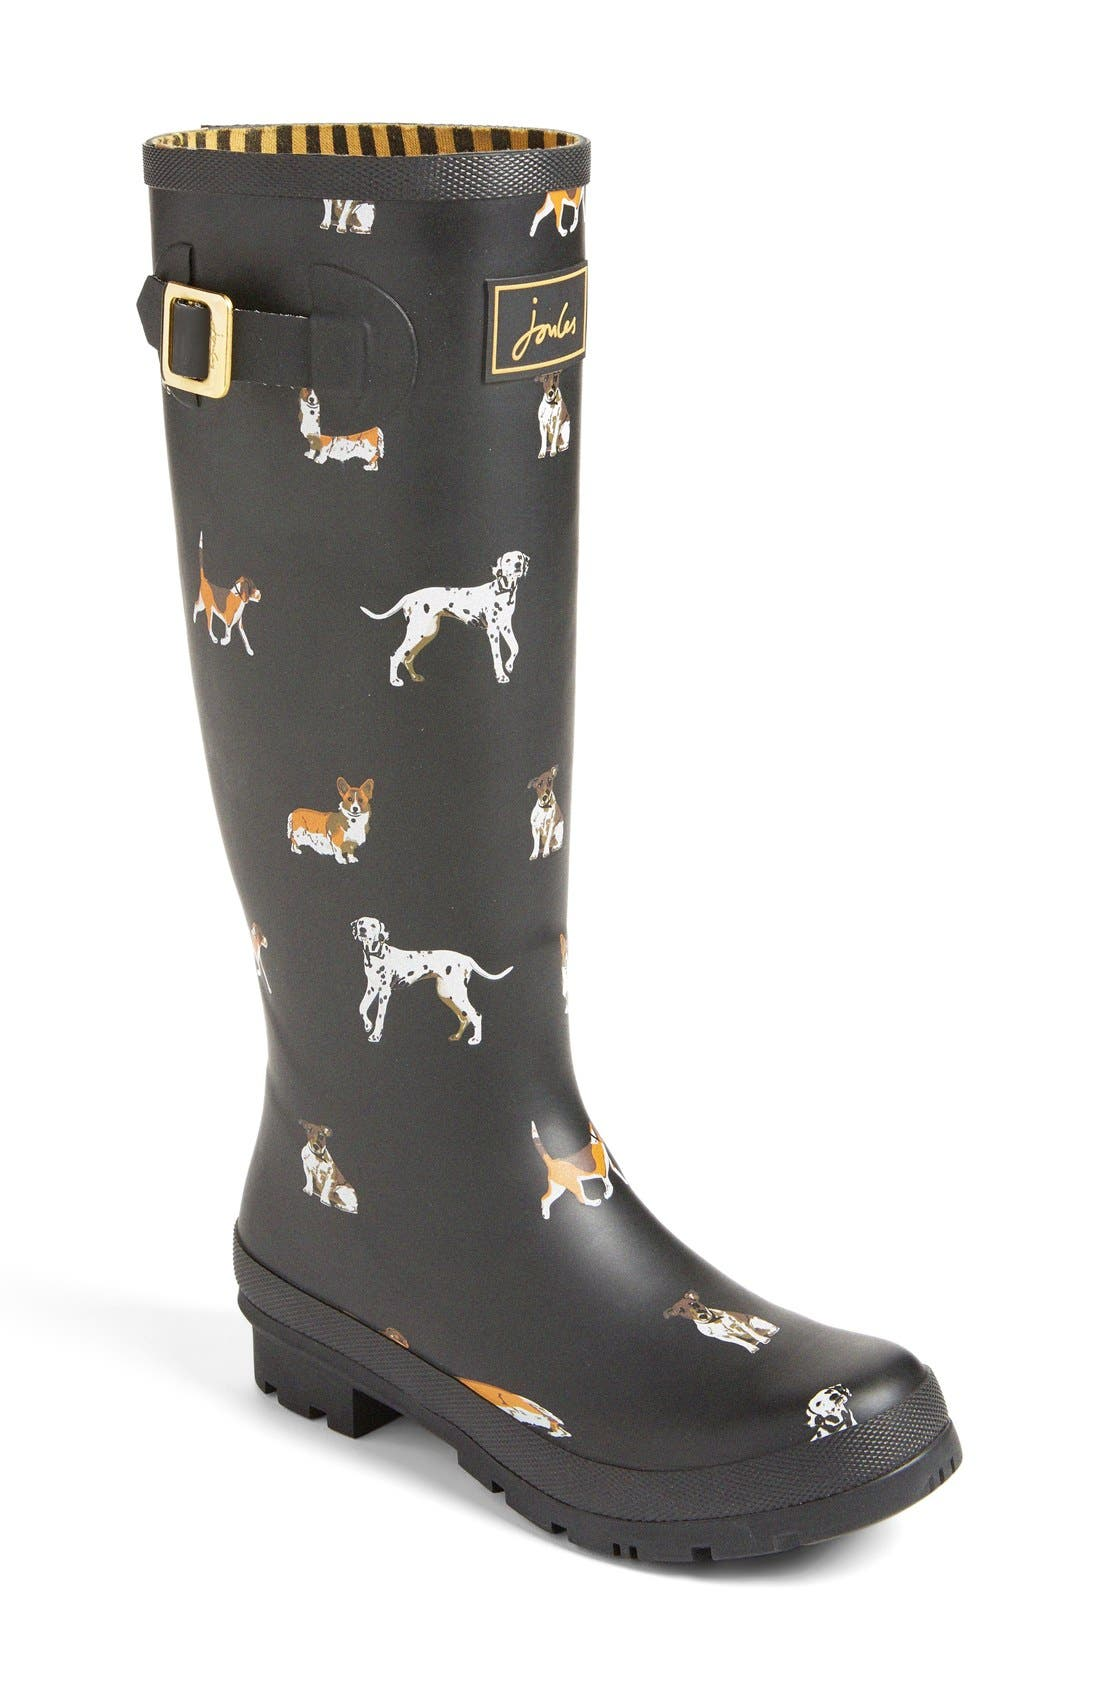 Alternate Image 1 Selected - Joules 'Welly' Print Rain Boot (Women)